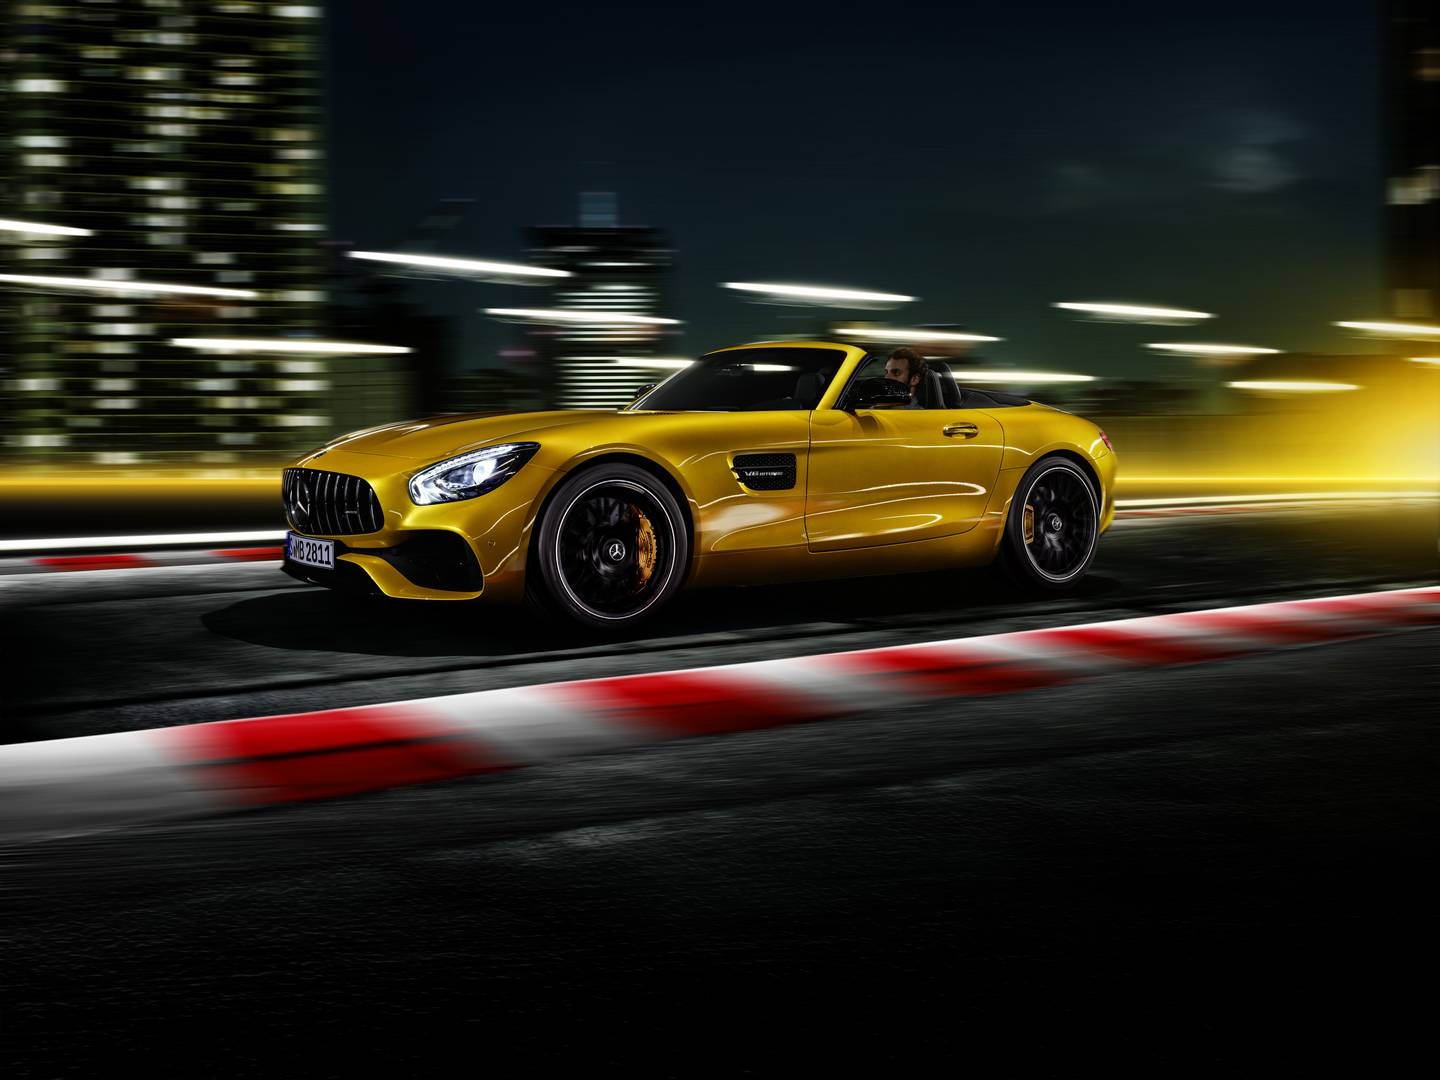 515bhp Mercedes-AMG GT S Roadster arrives with £126730 price tag